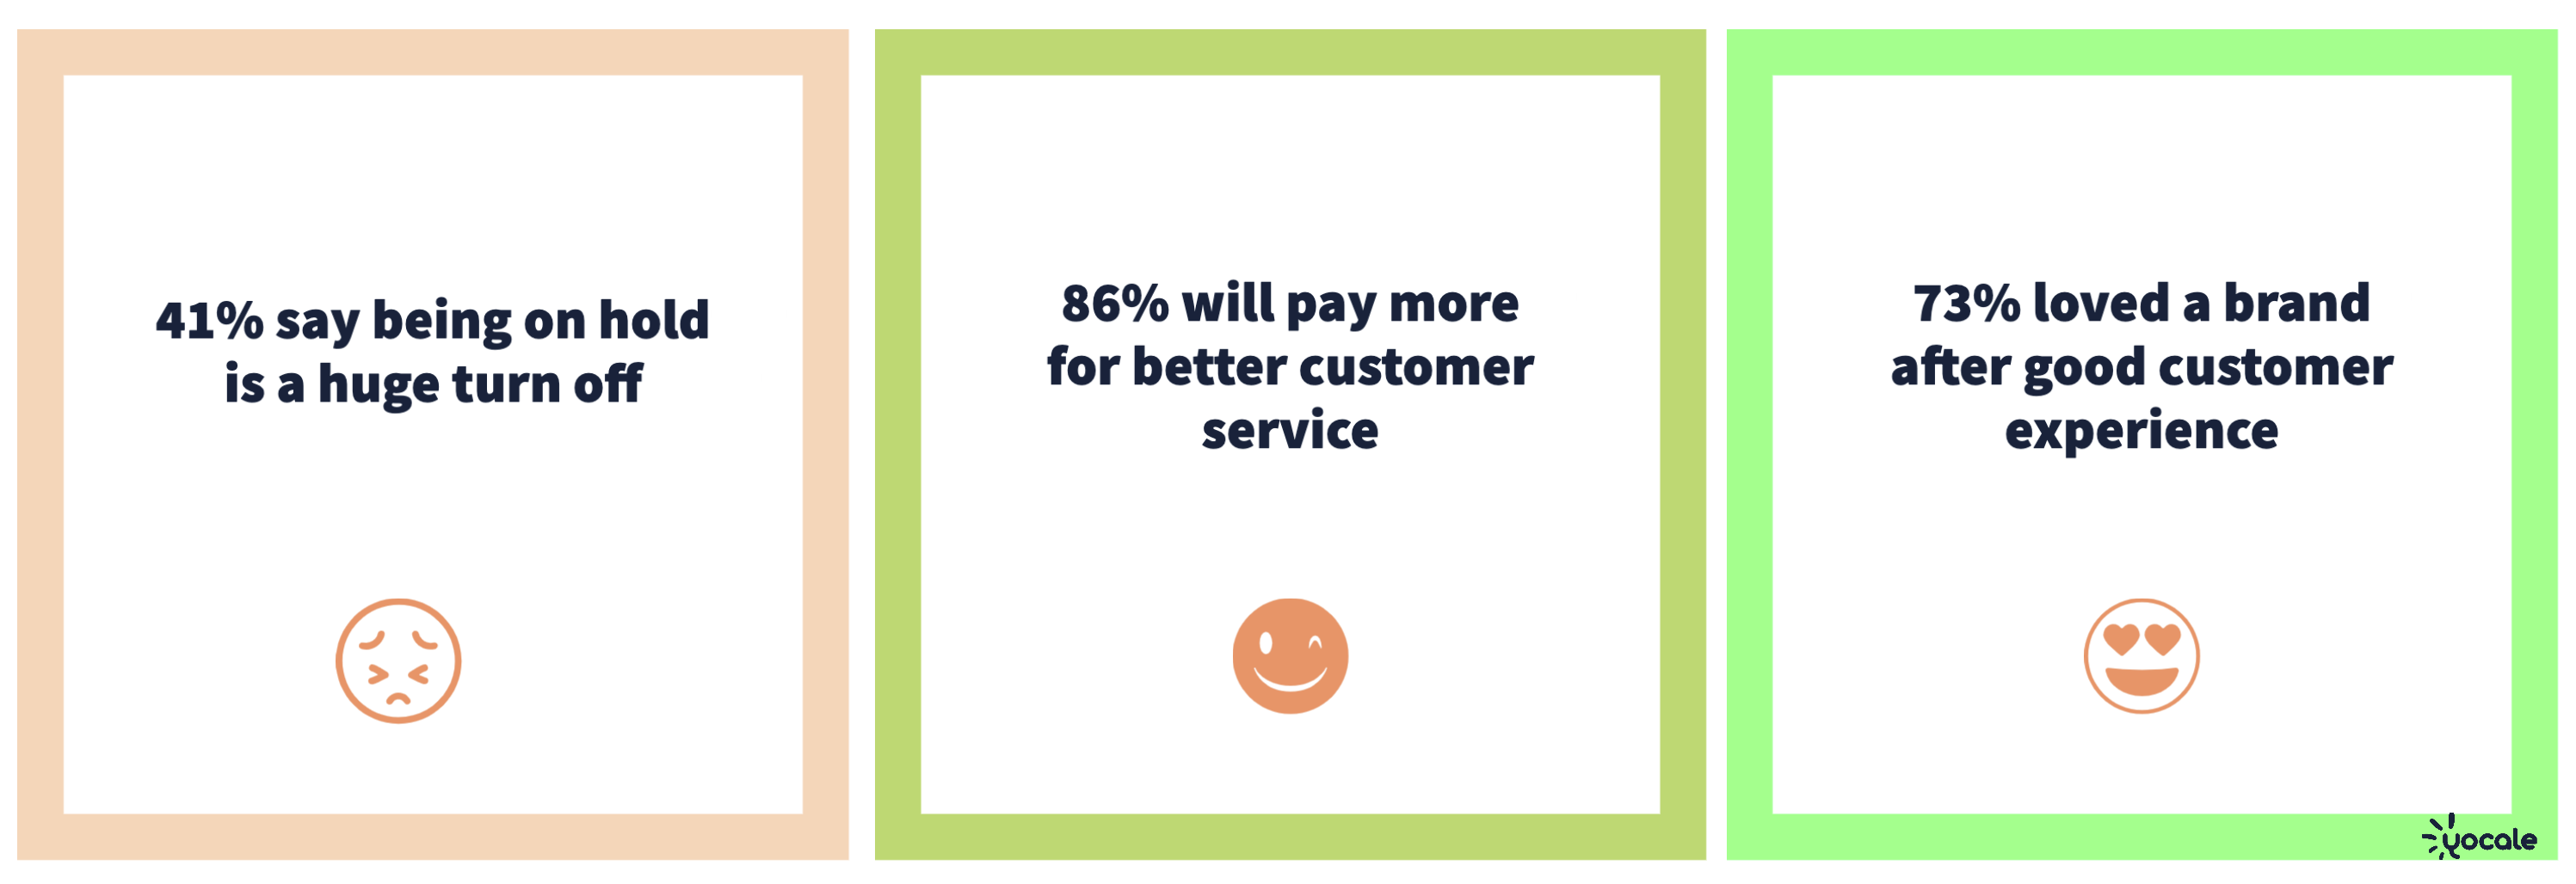 Customer experience is insurance